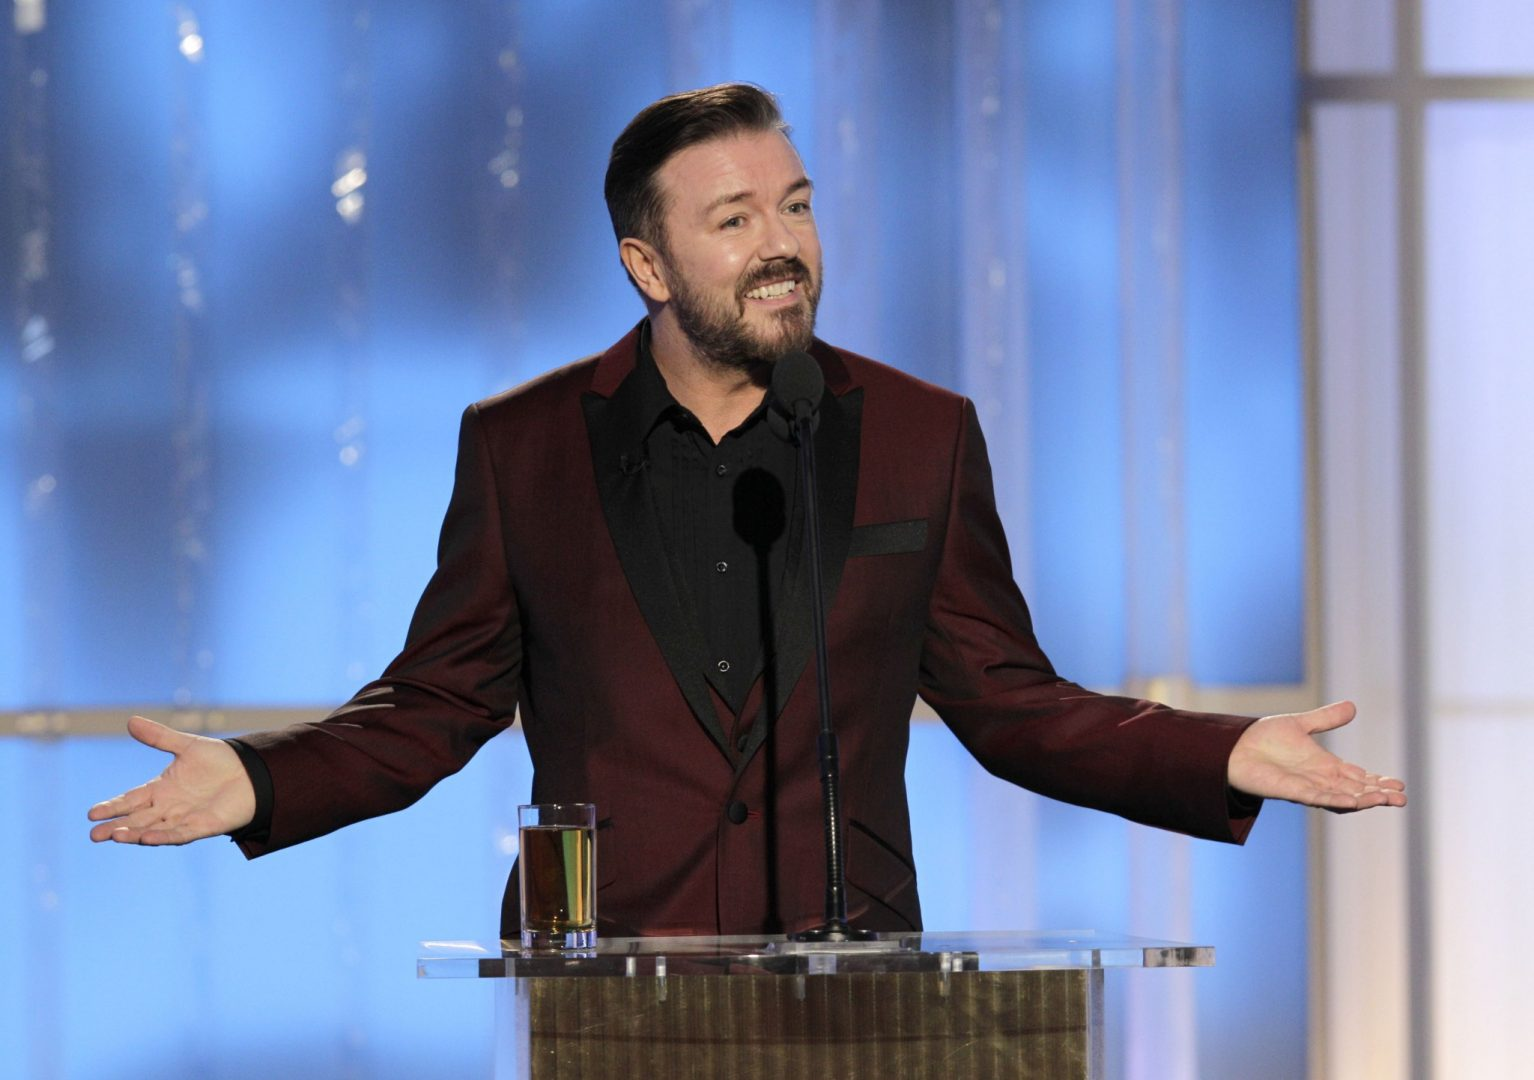 Ricky Gervais presenting at the Golden Globes in 2012